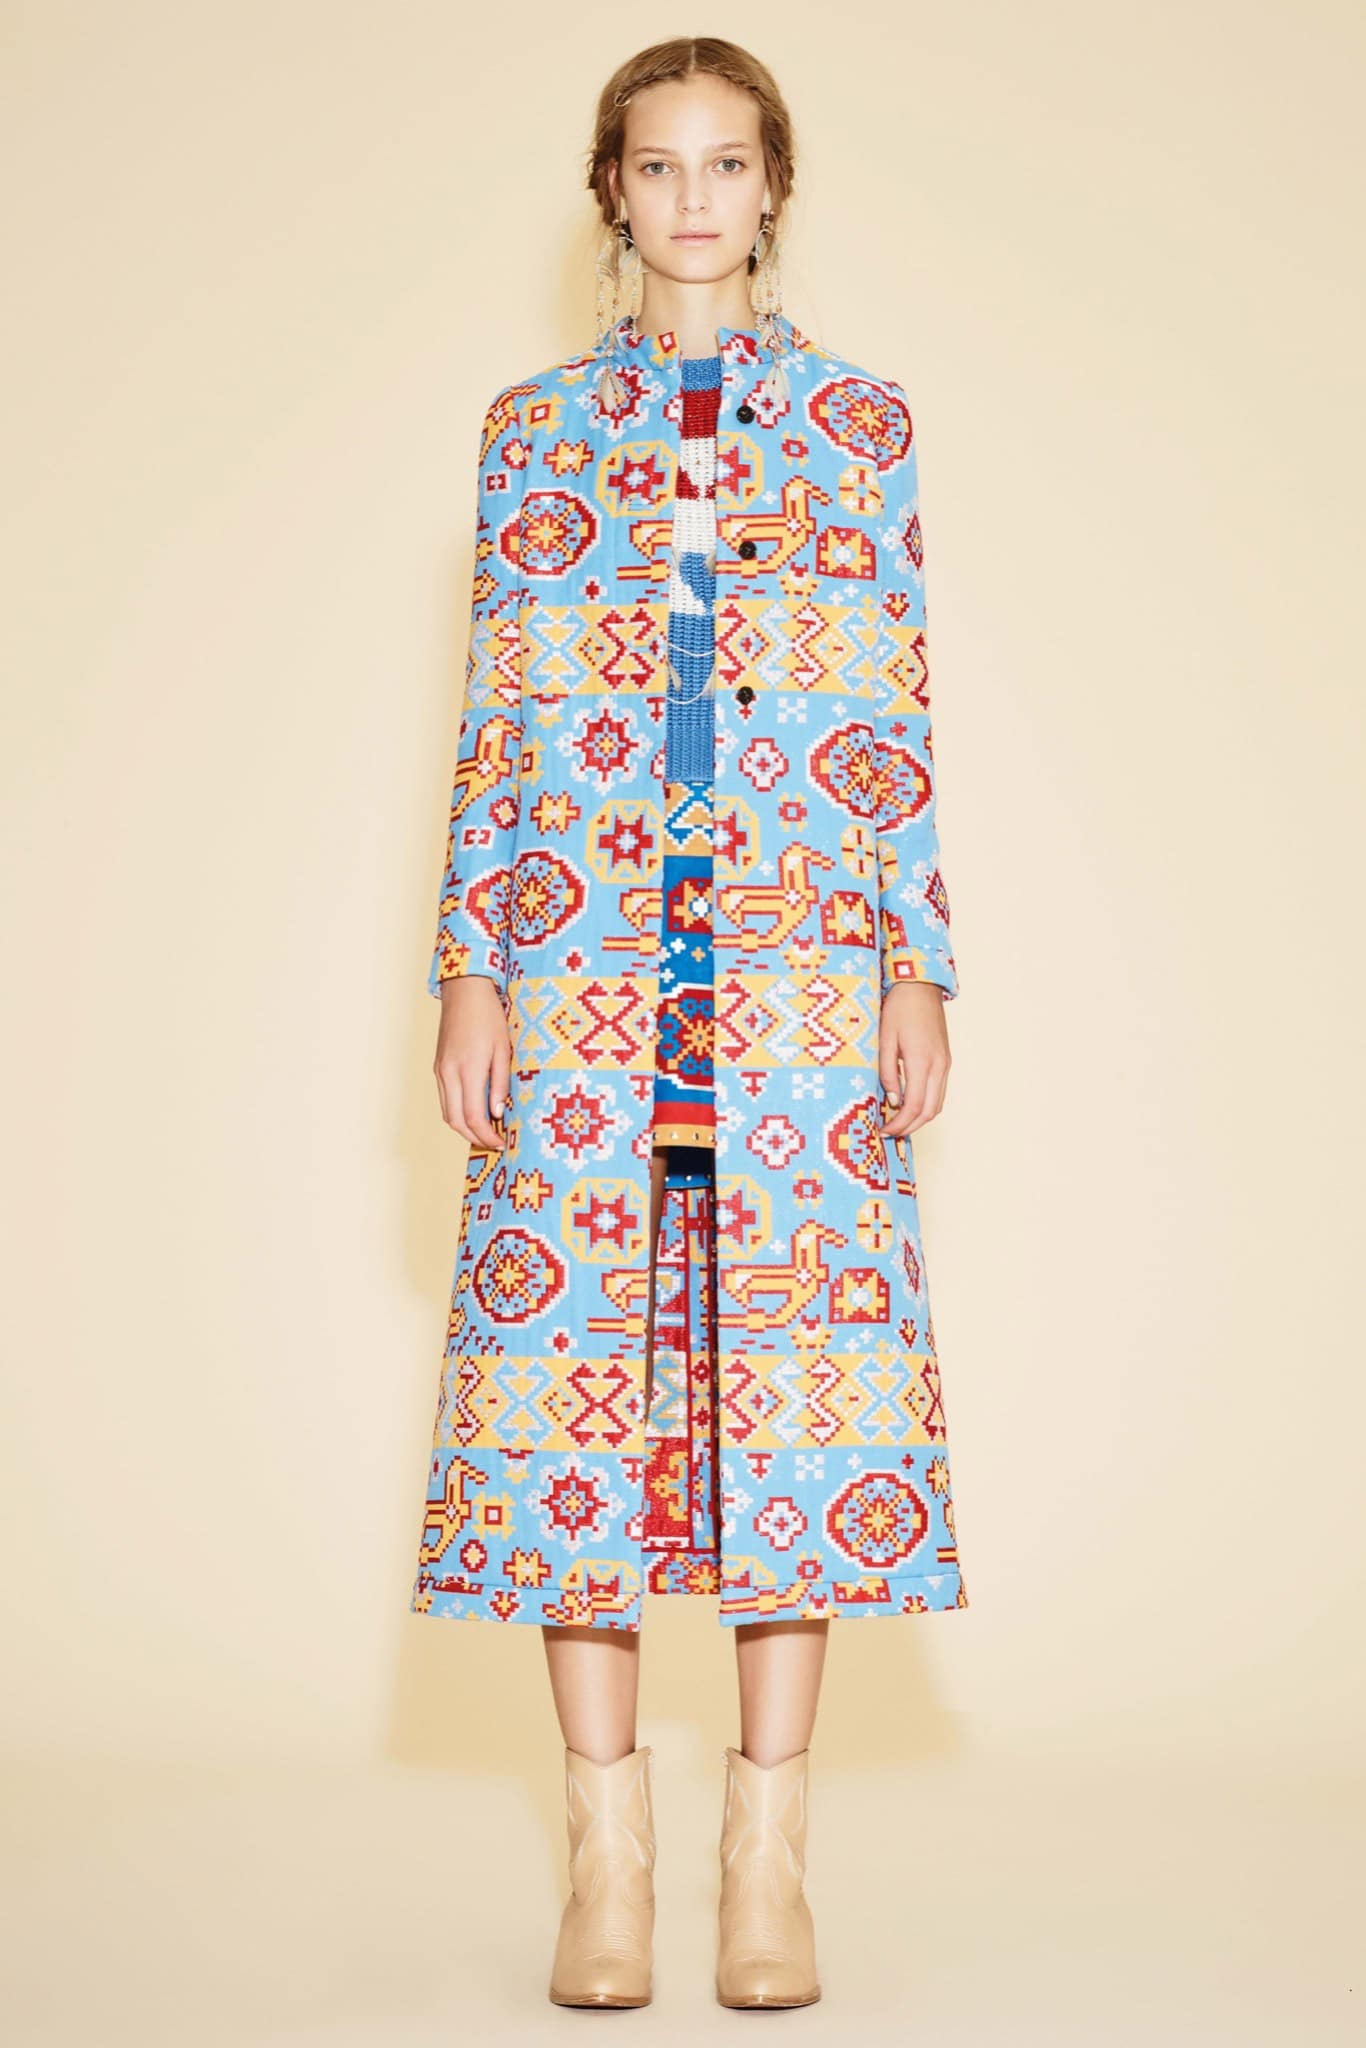 Valentino Resort 2016 Collection Featuring Bold Colors And